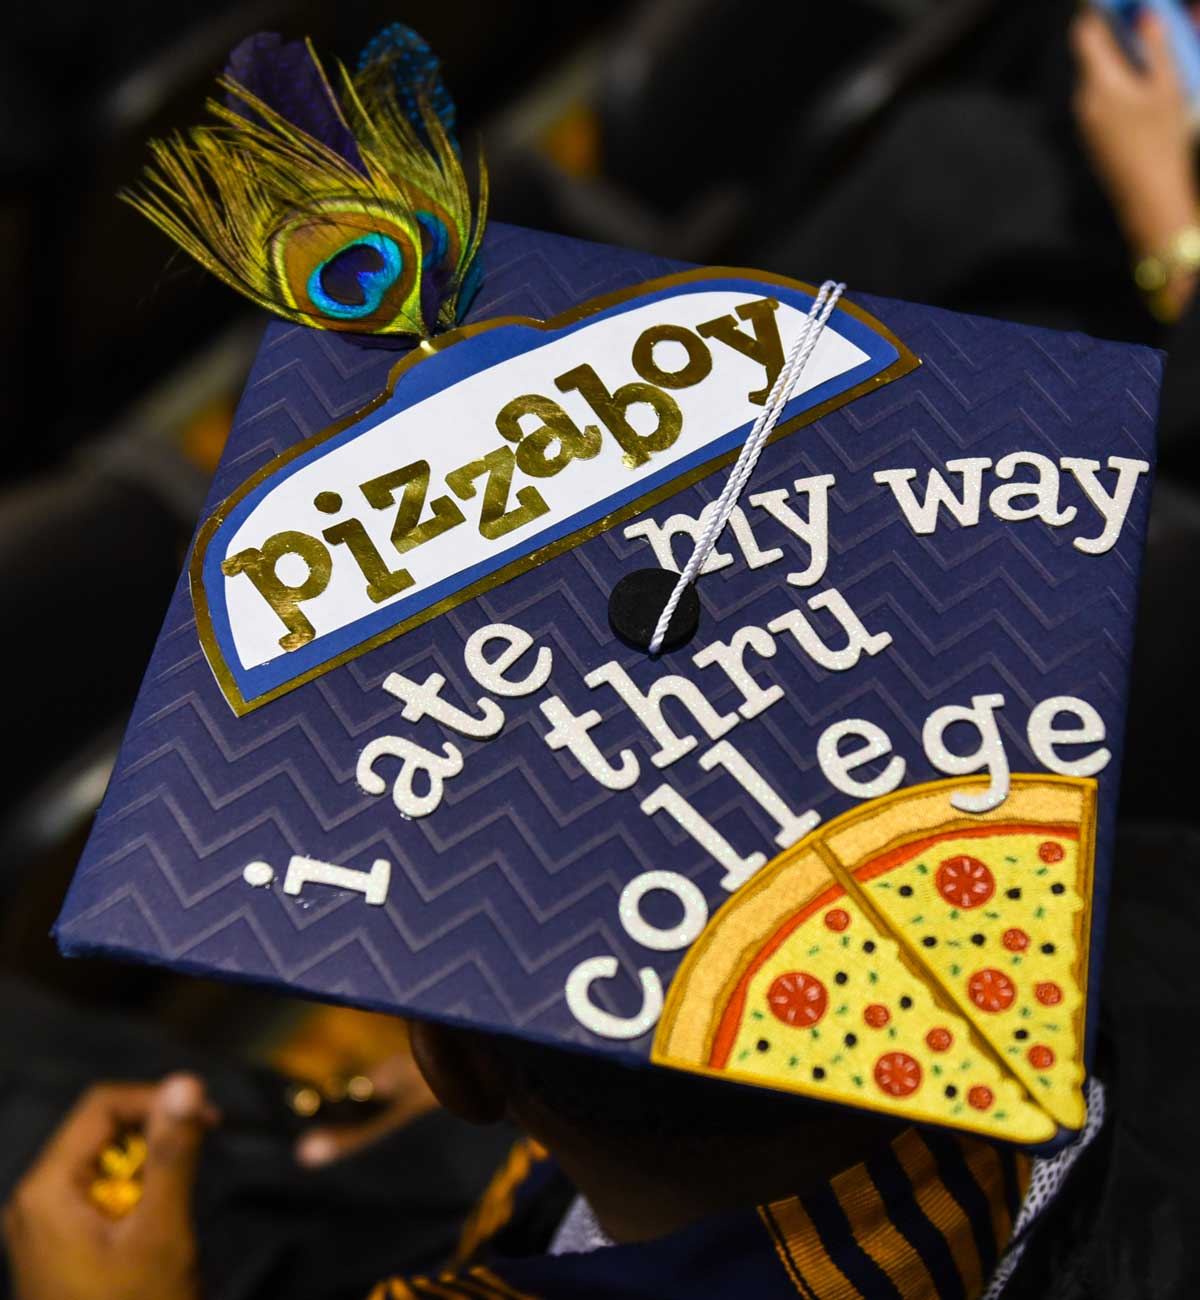 Grad cap decorated with text: Pizzaboy I ate my way thru college